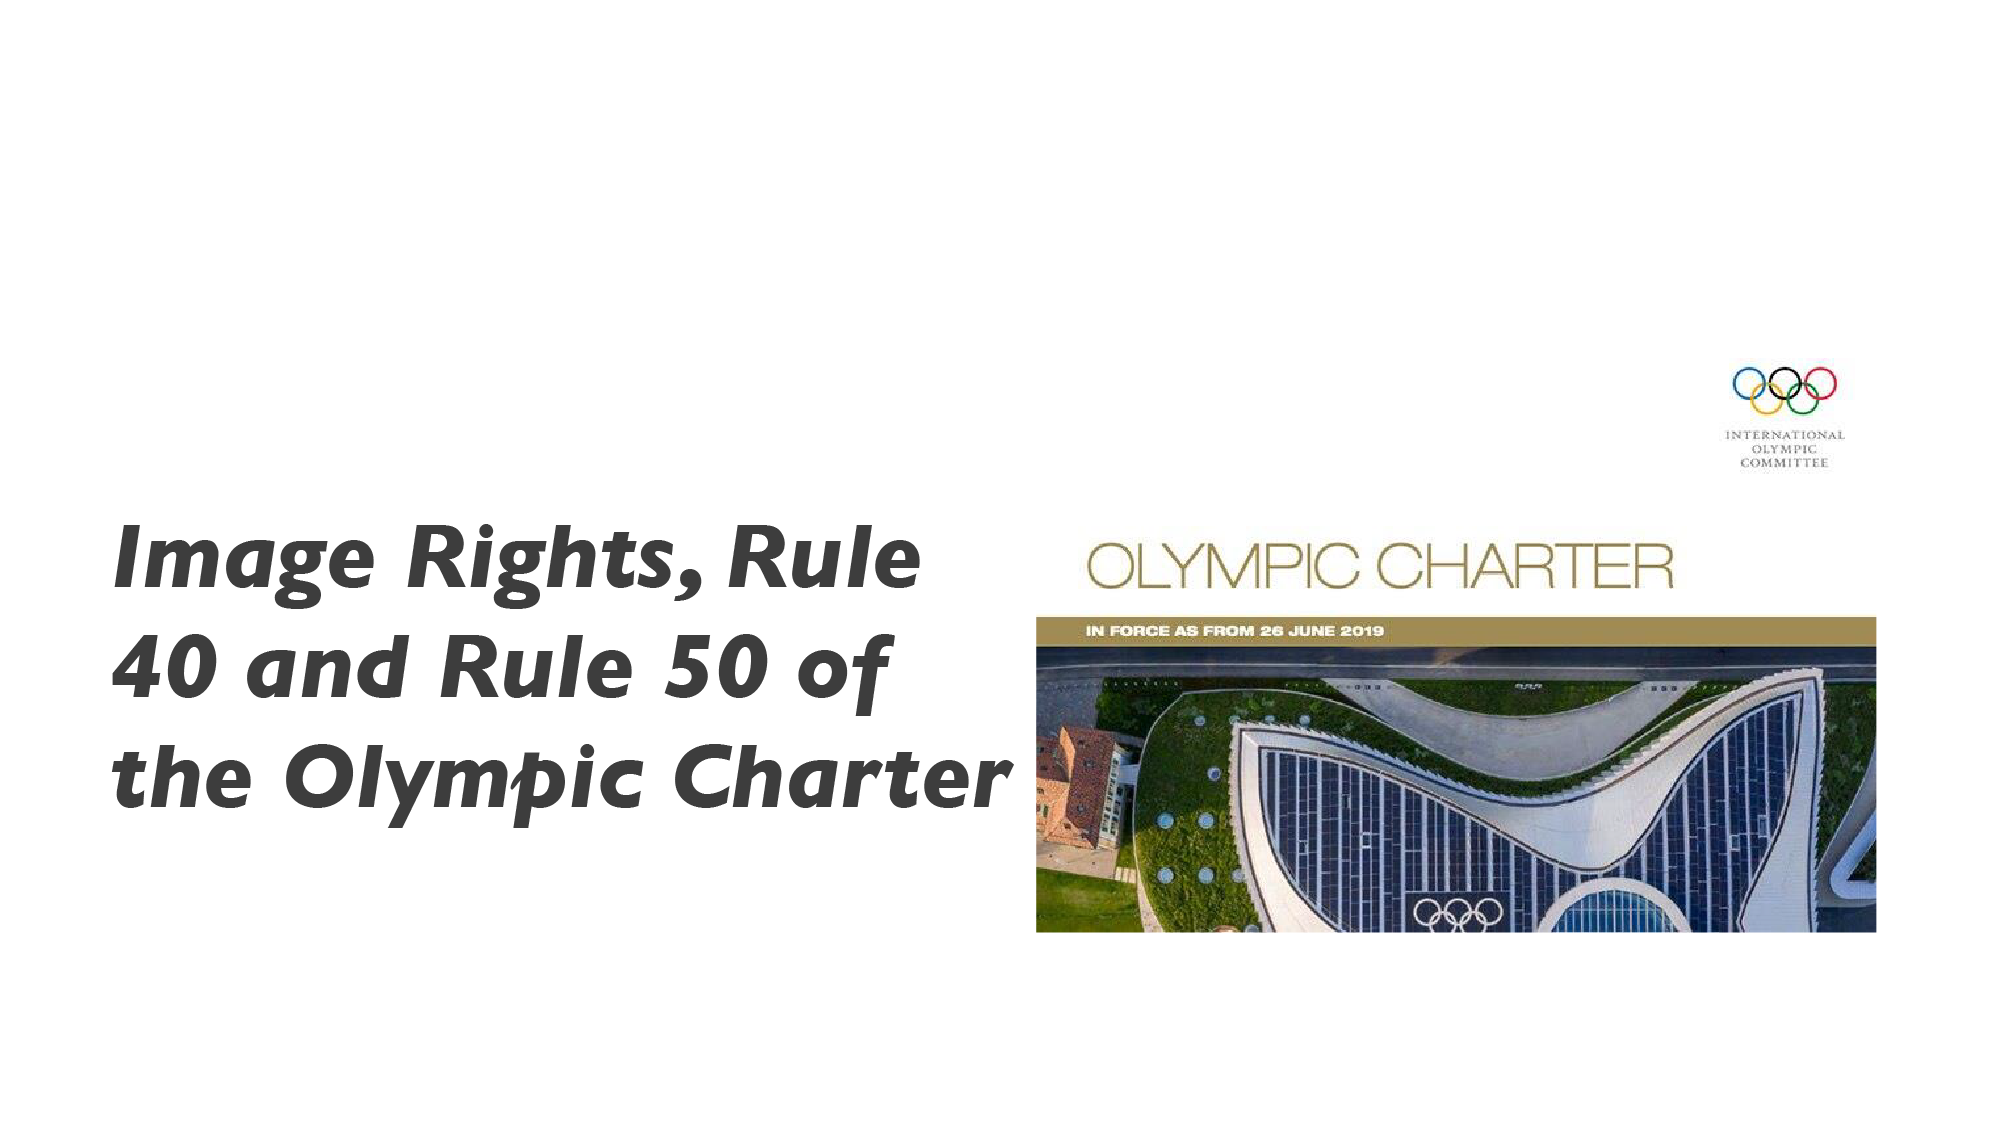 Image Rights and Rule 40